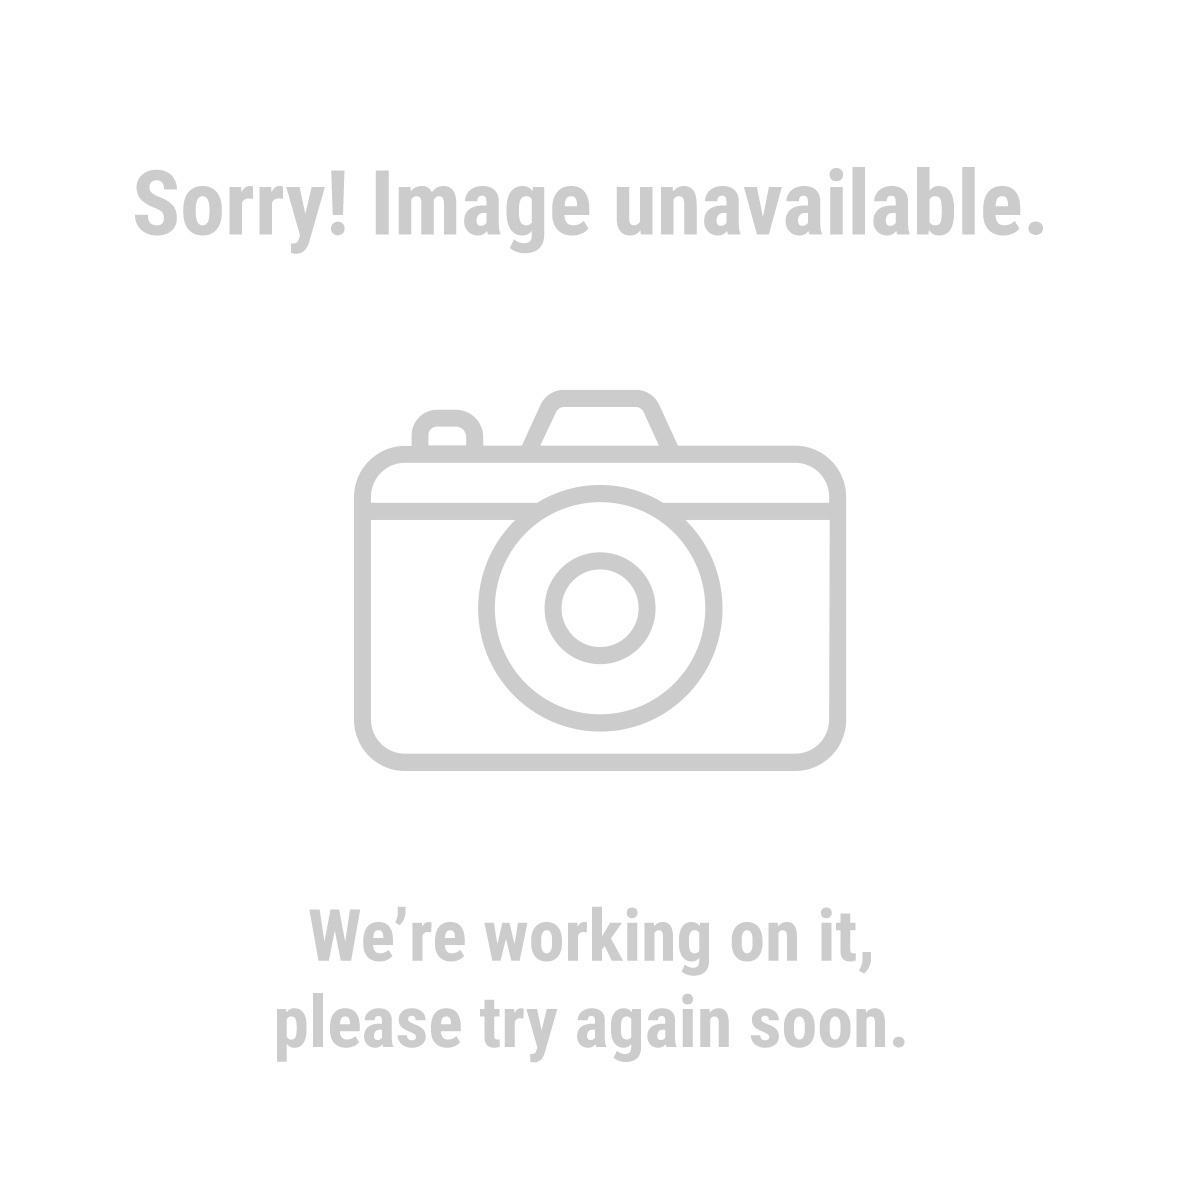 Chicago Electric Power Tools 7340 20 Gallon Parts Washer with General Purpose Pump